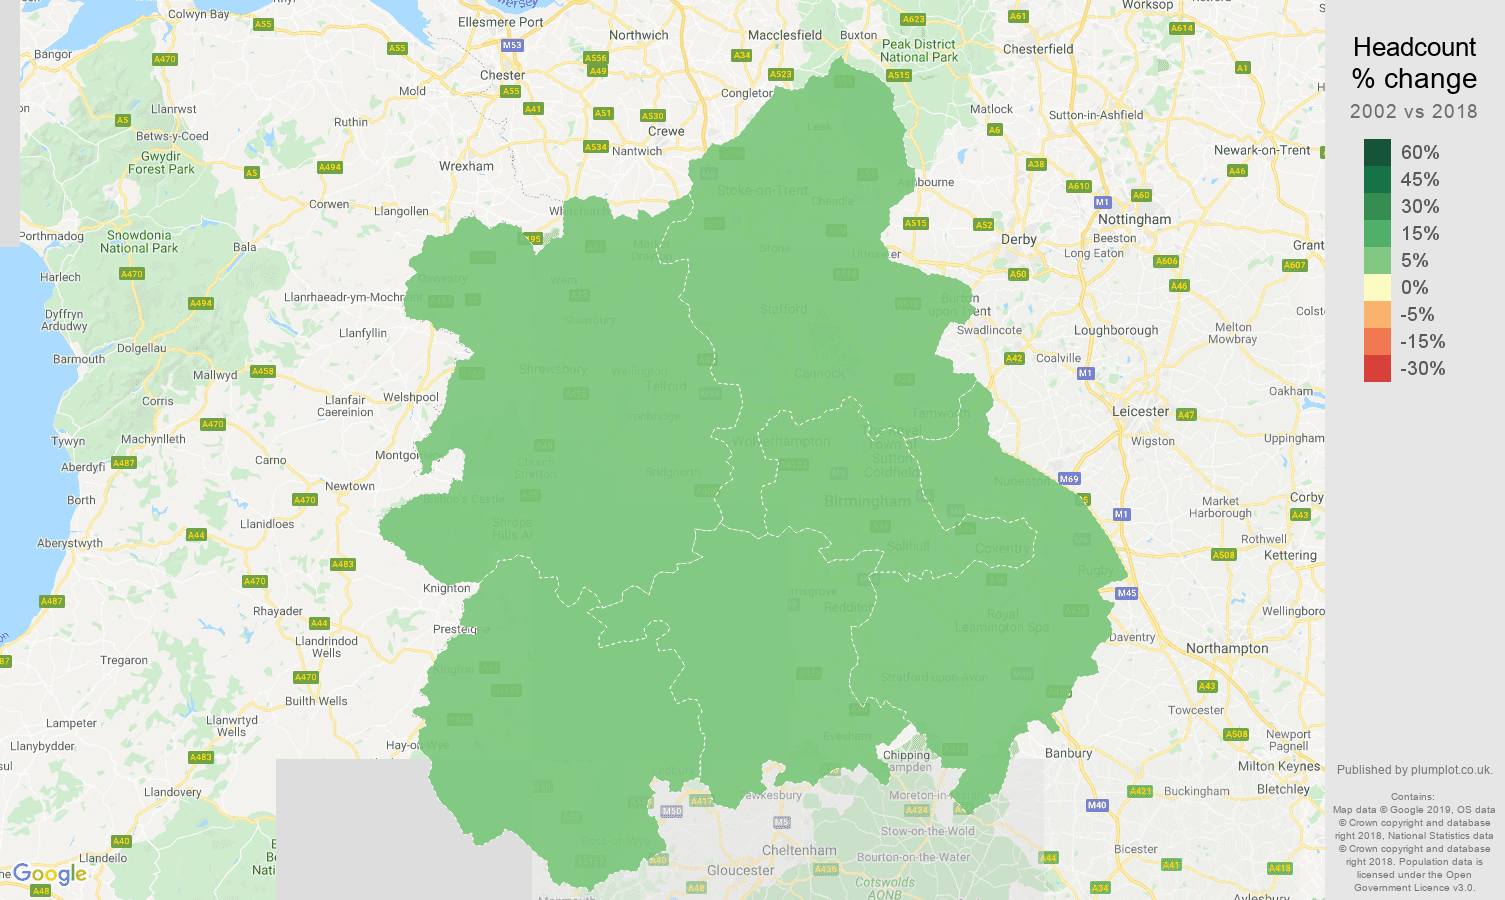 West Midlands headcount change map